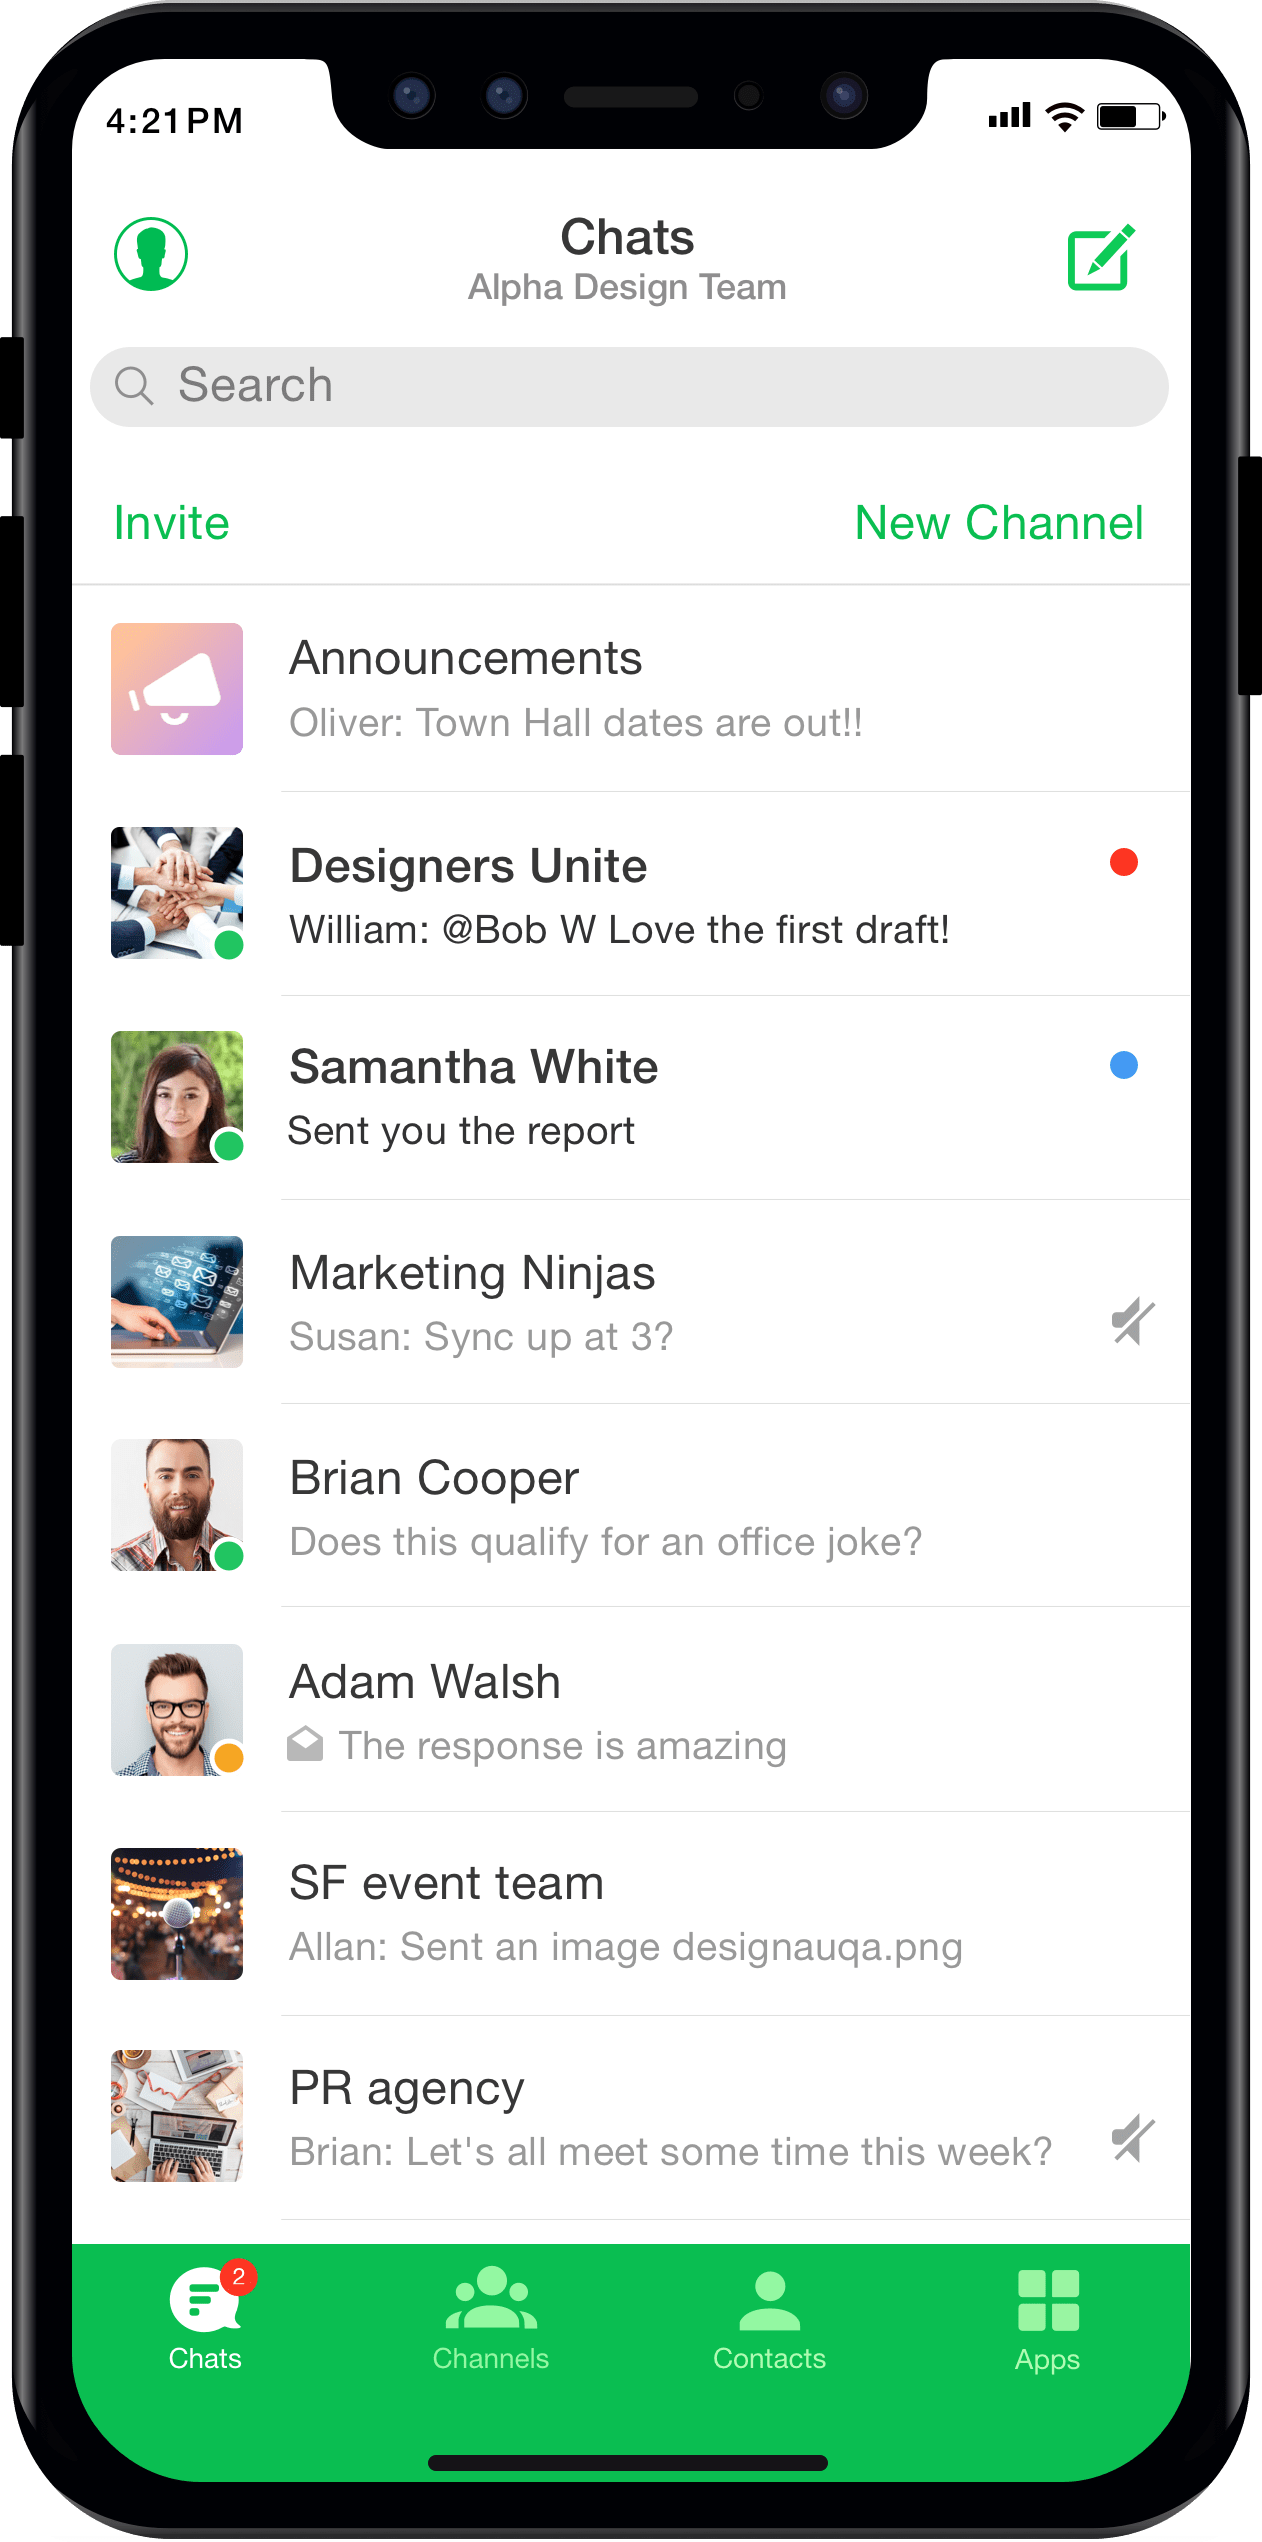 b24a3d3de317 Download the best enterprise team messaging app on iPhone